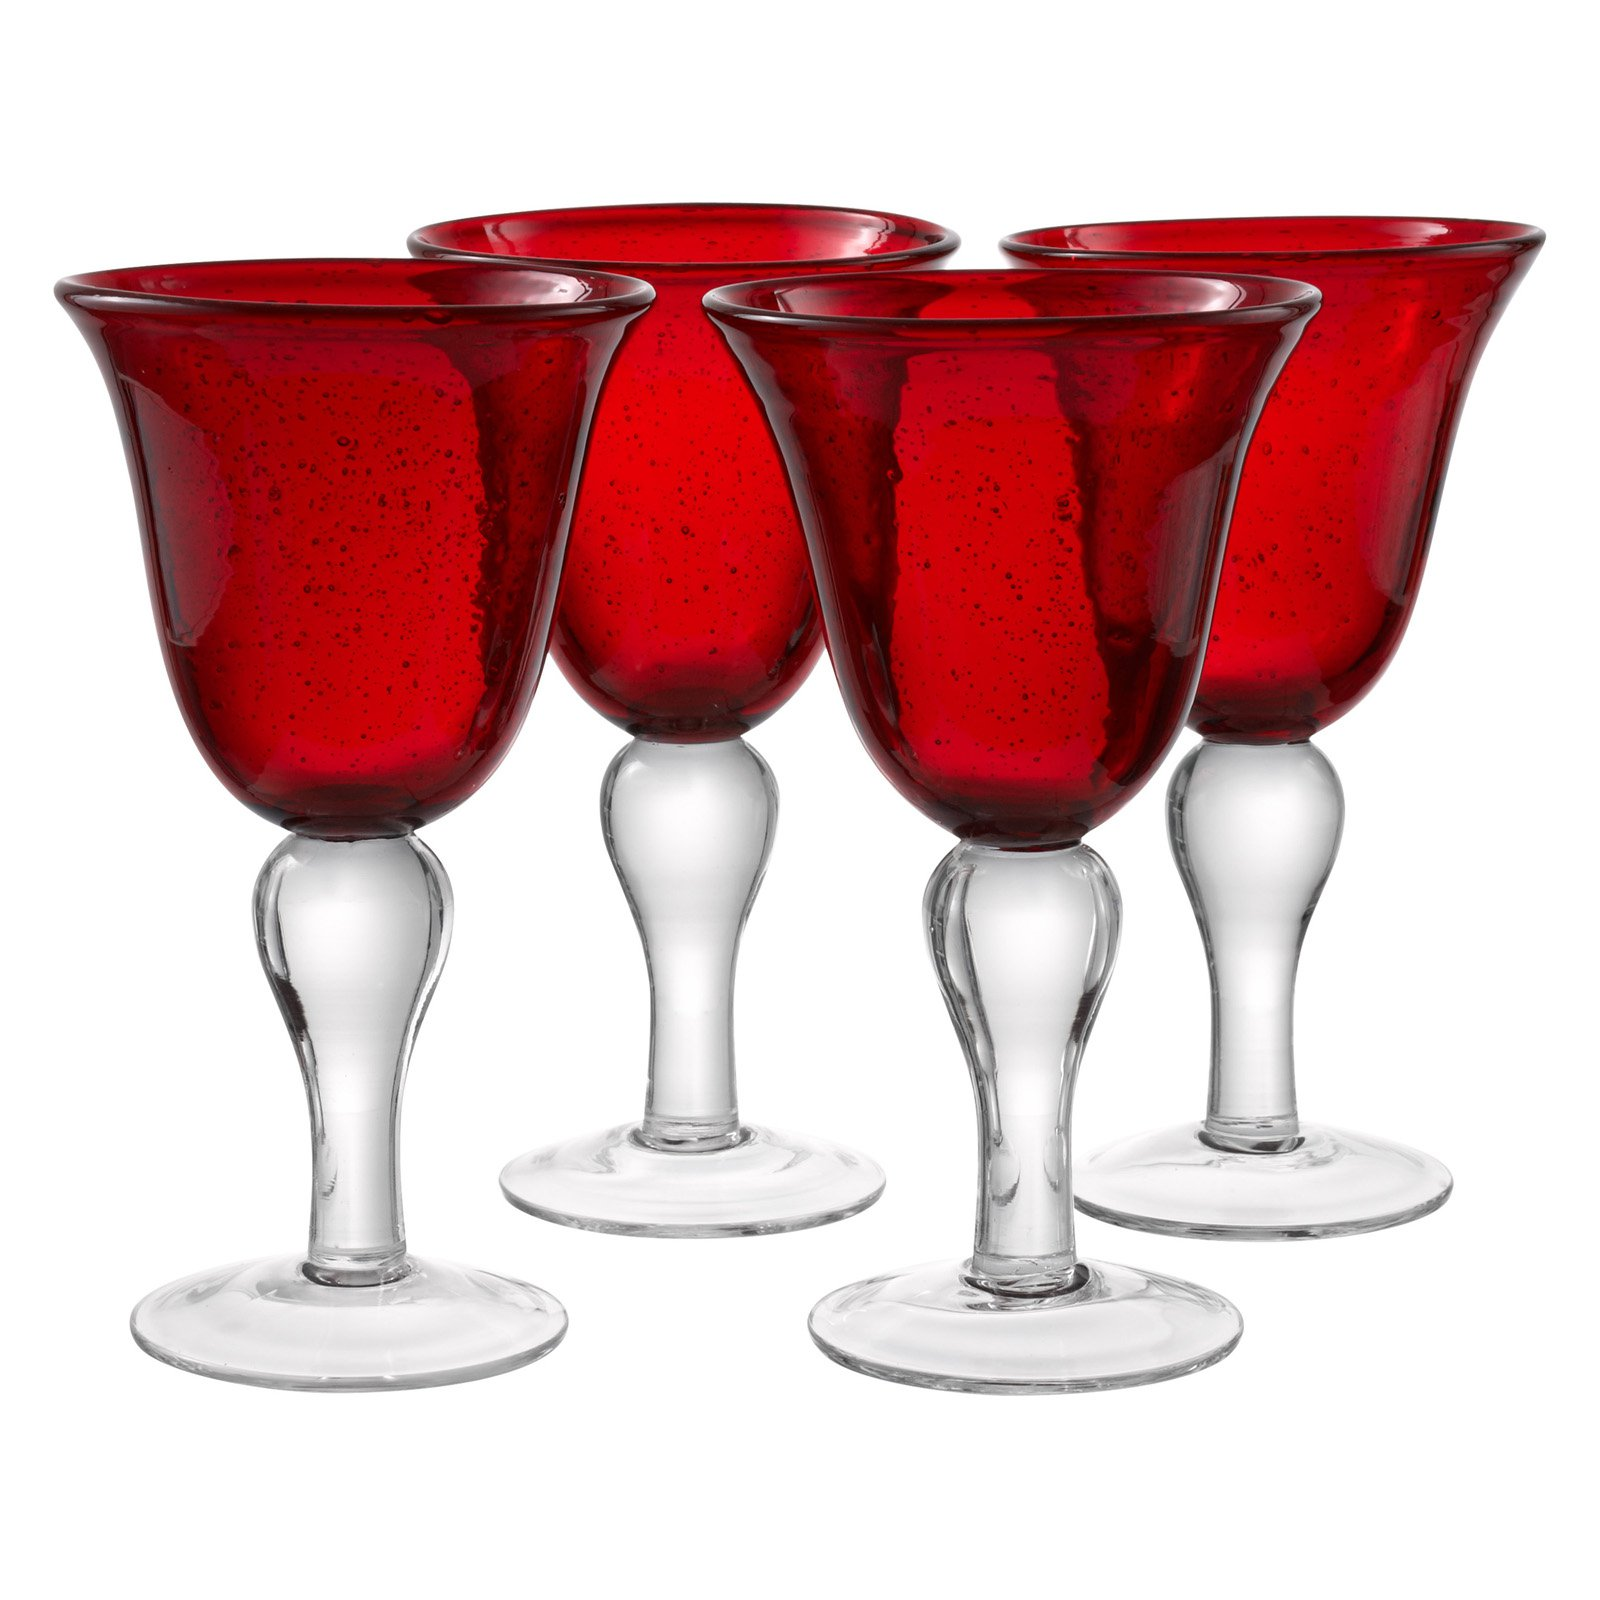 Artland Inc. Iris Ruby Goblet Glasses - Set of 4